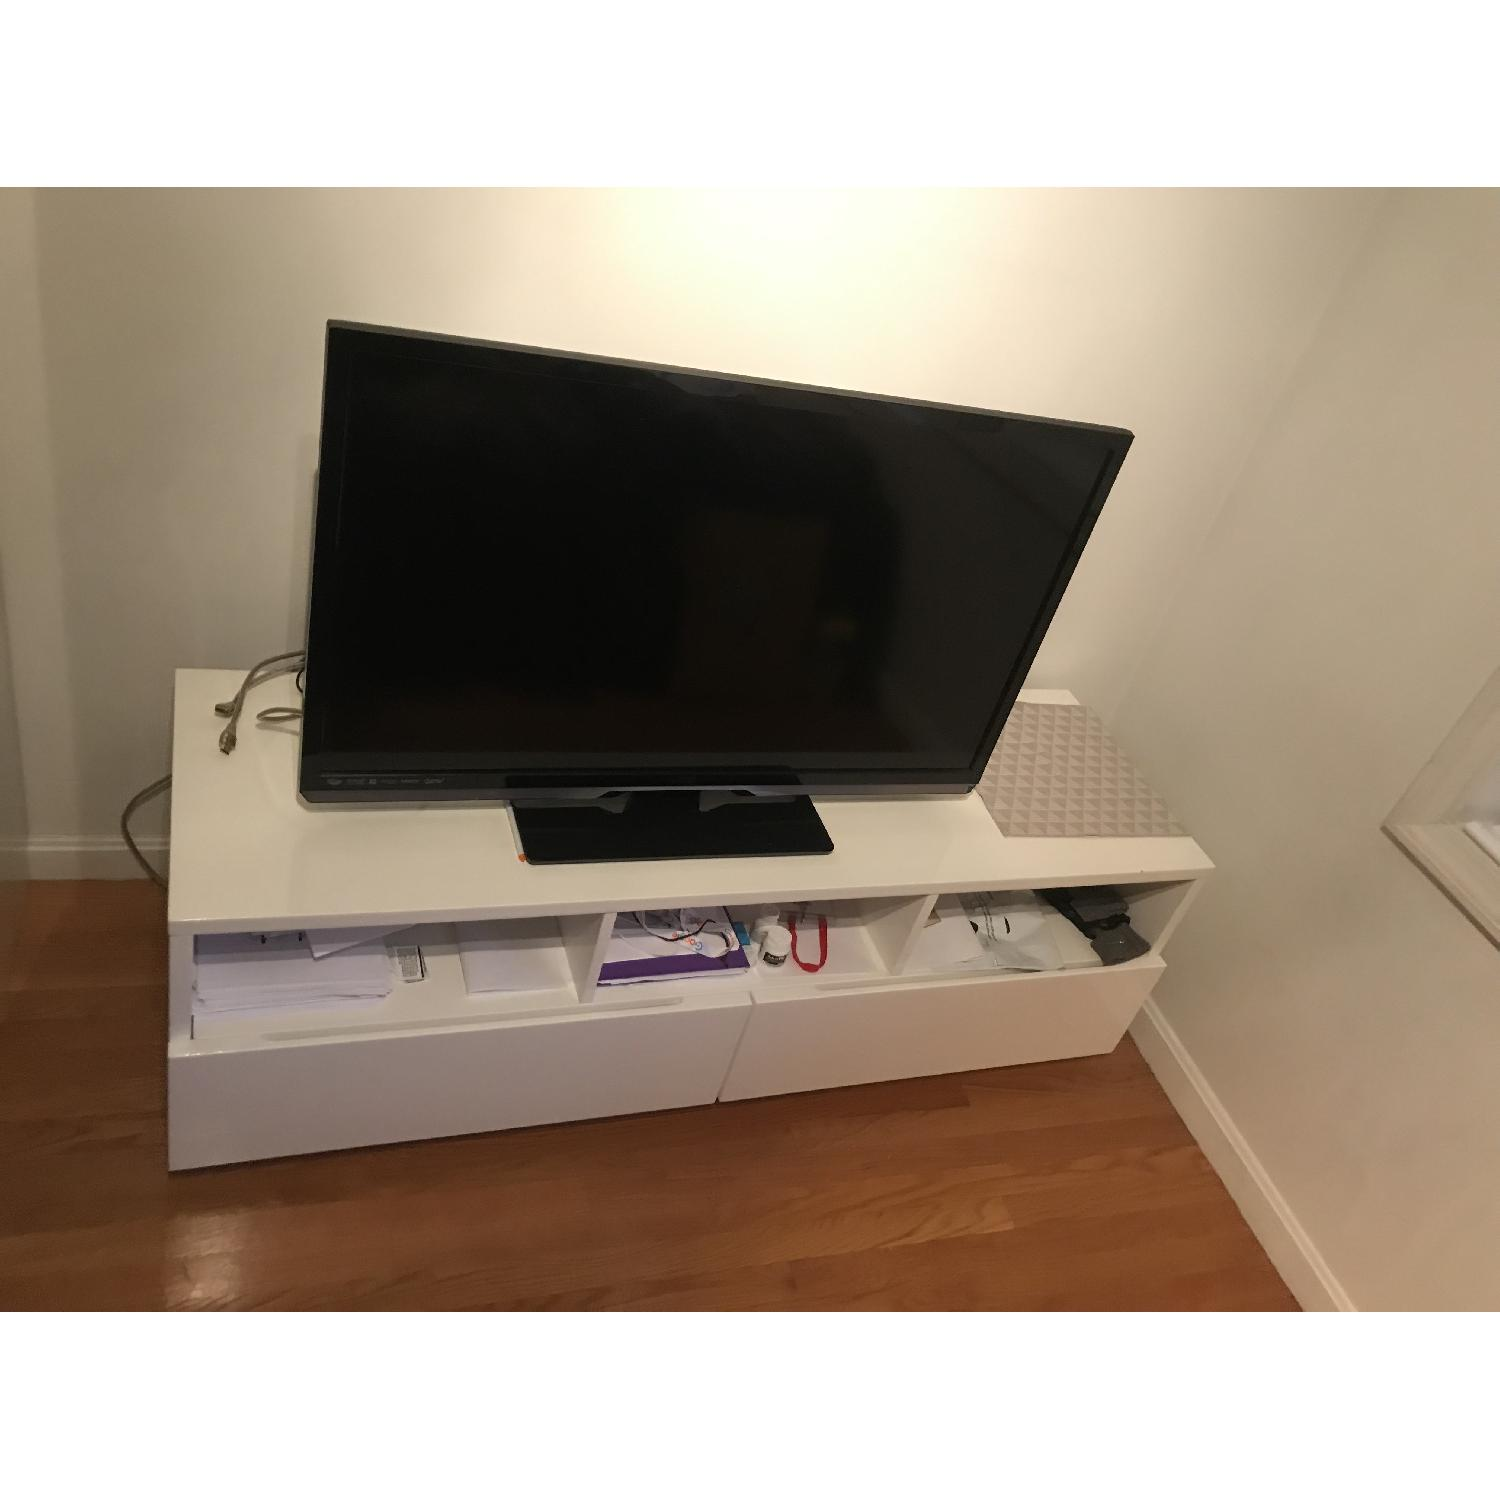 CB2 High Gloss White Modern TV Stand w/ 2 Drawers - image-4